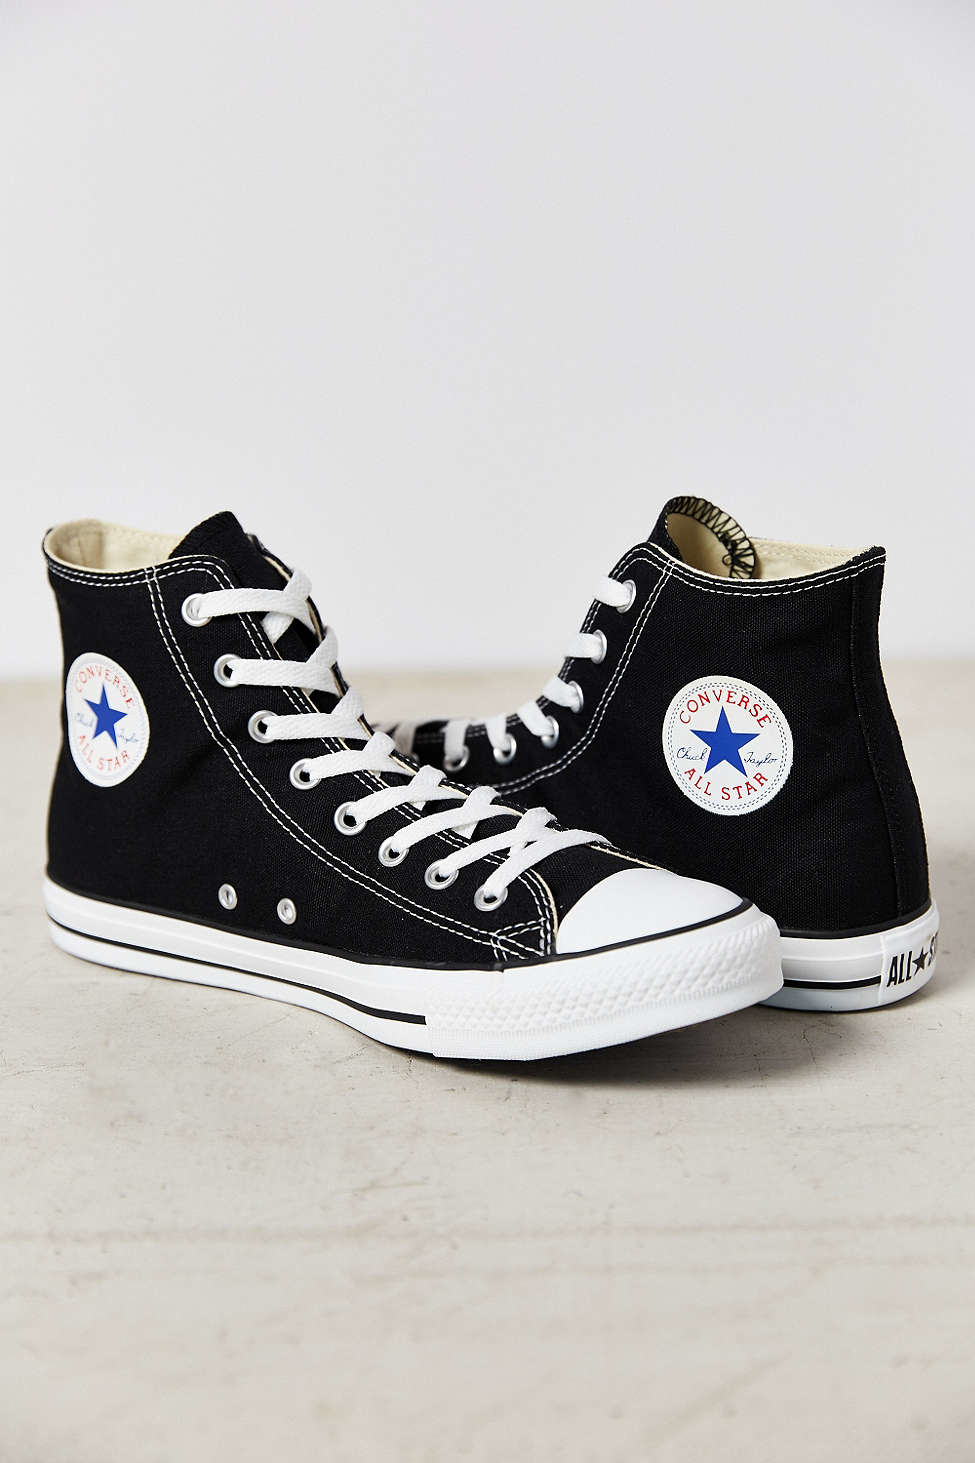 Converse Chuck Taylor All Star High Top Sneaker in Black ...